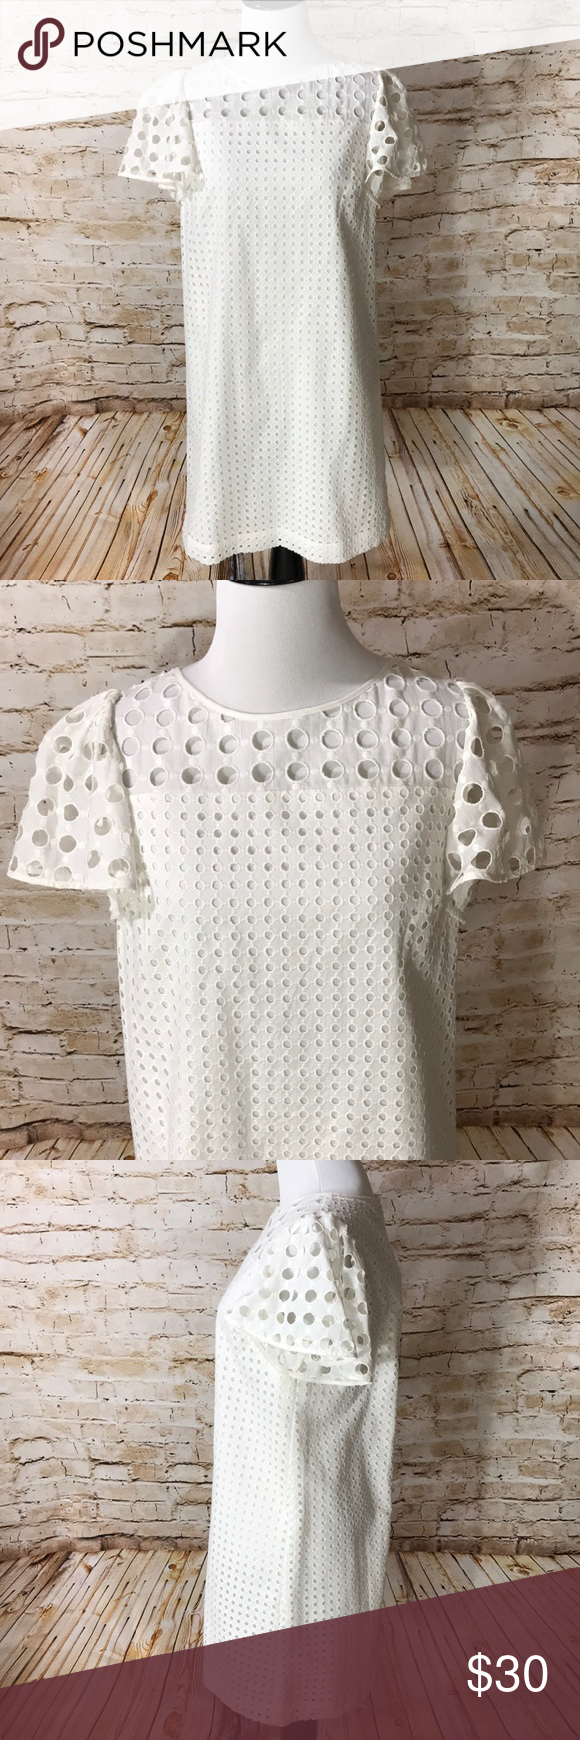 Loft White Eyelet Shift Dress New With Tags White Eyelet White Eyelet Dress Shift Dress [ 1740 x 580 Pixel ]